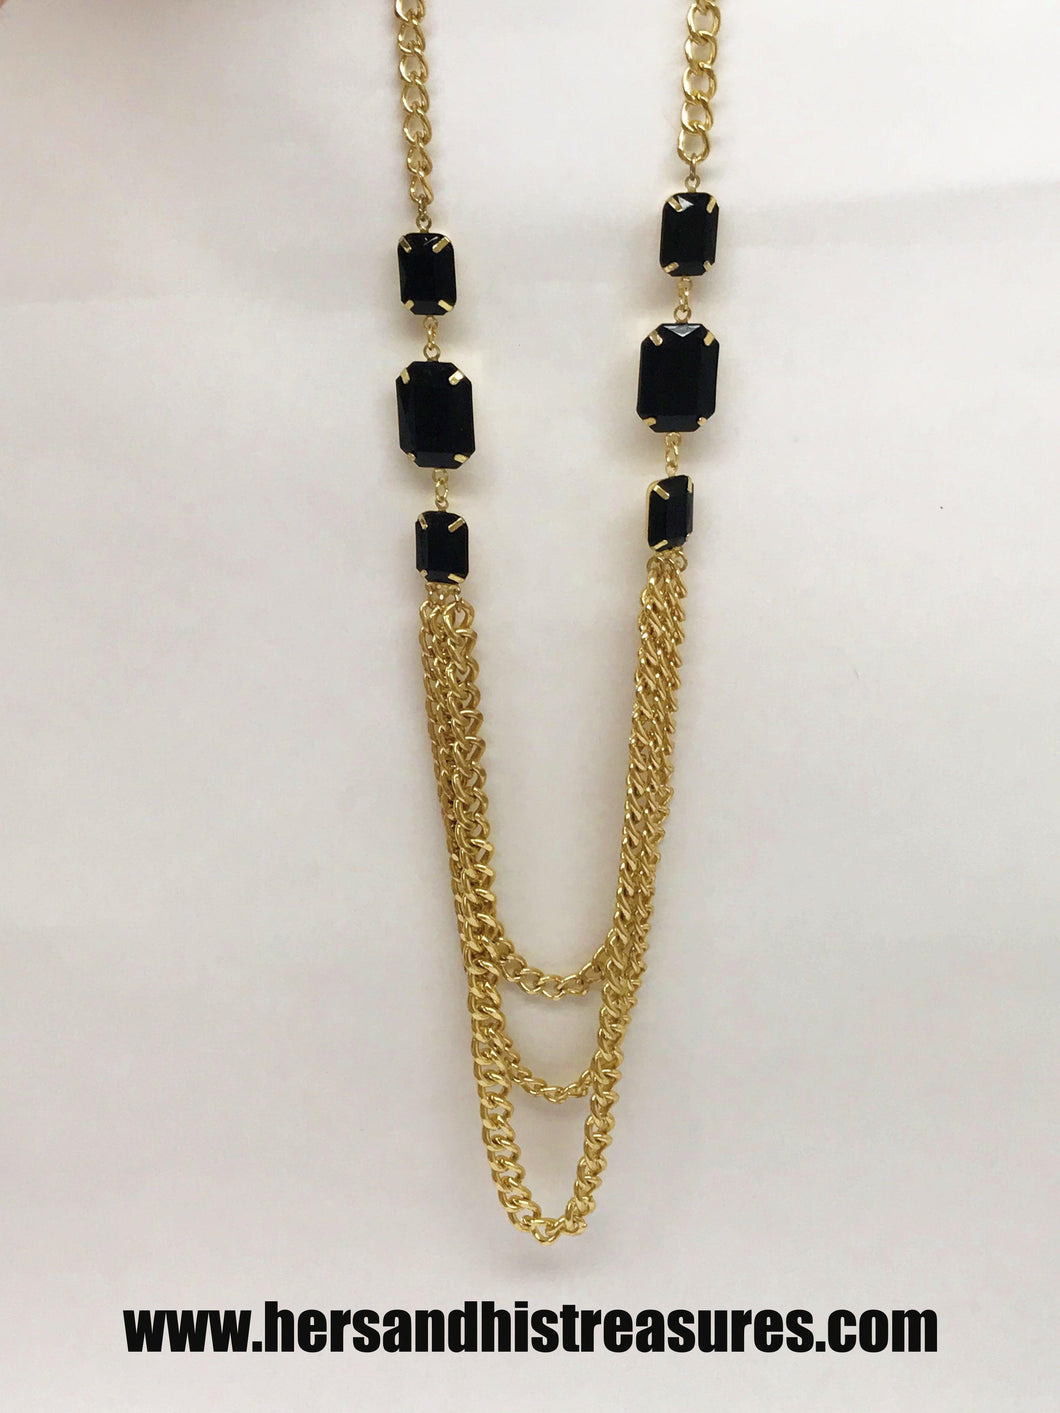 Vintage Gold Tone Triple Strand Chain Link Necklace With Faux Gem Accents